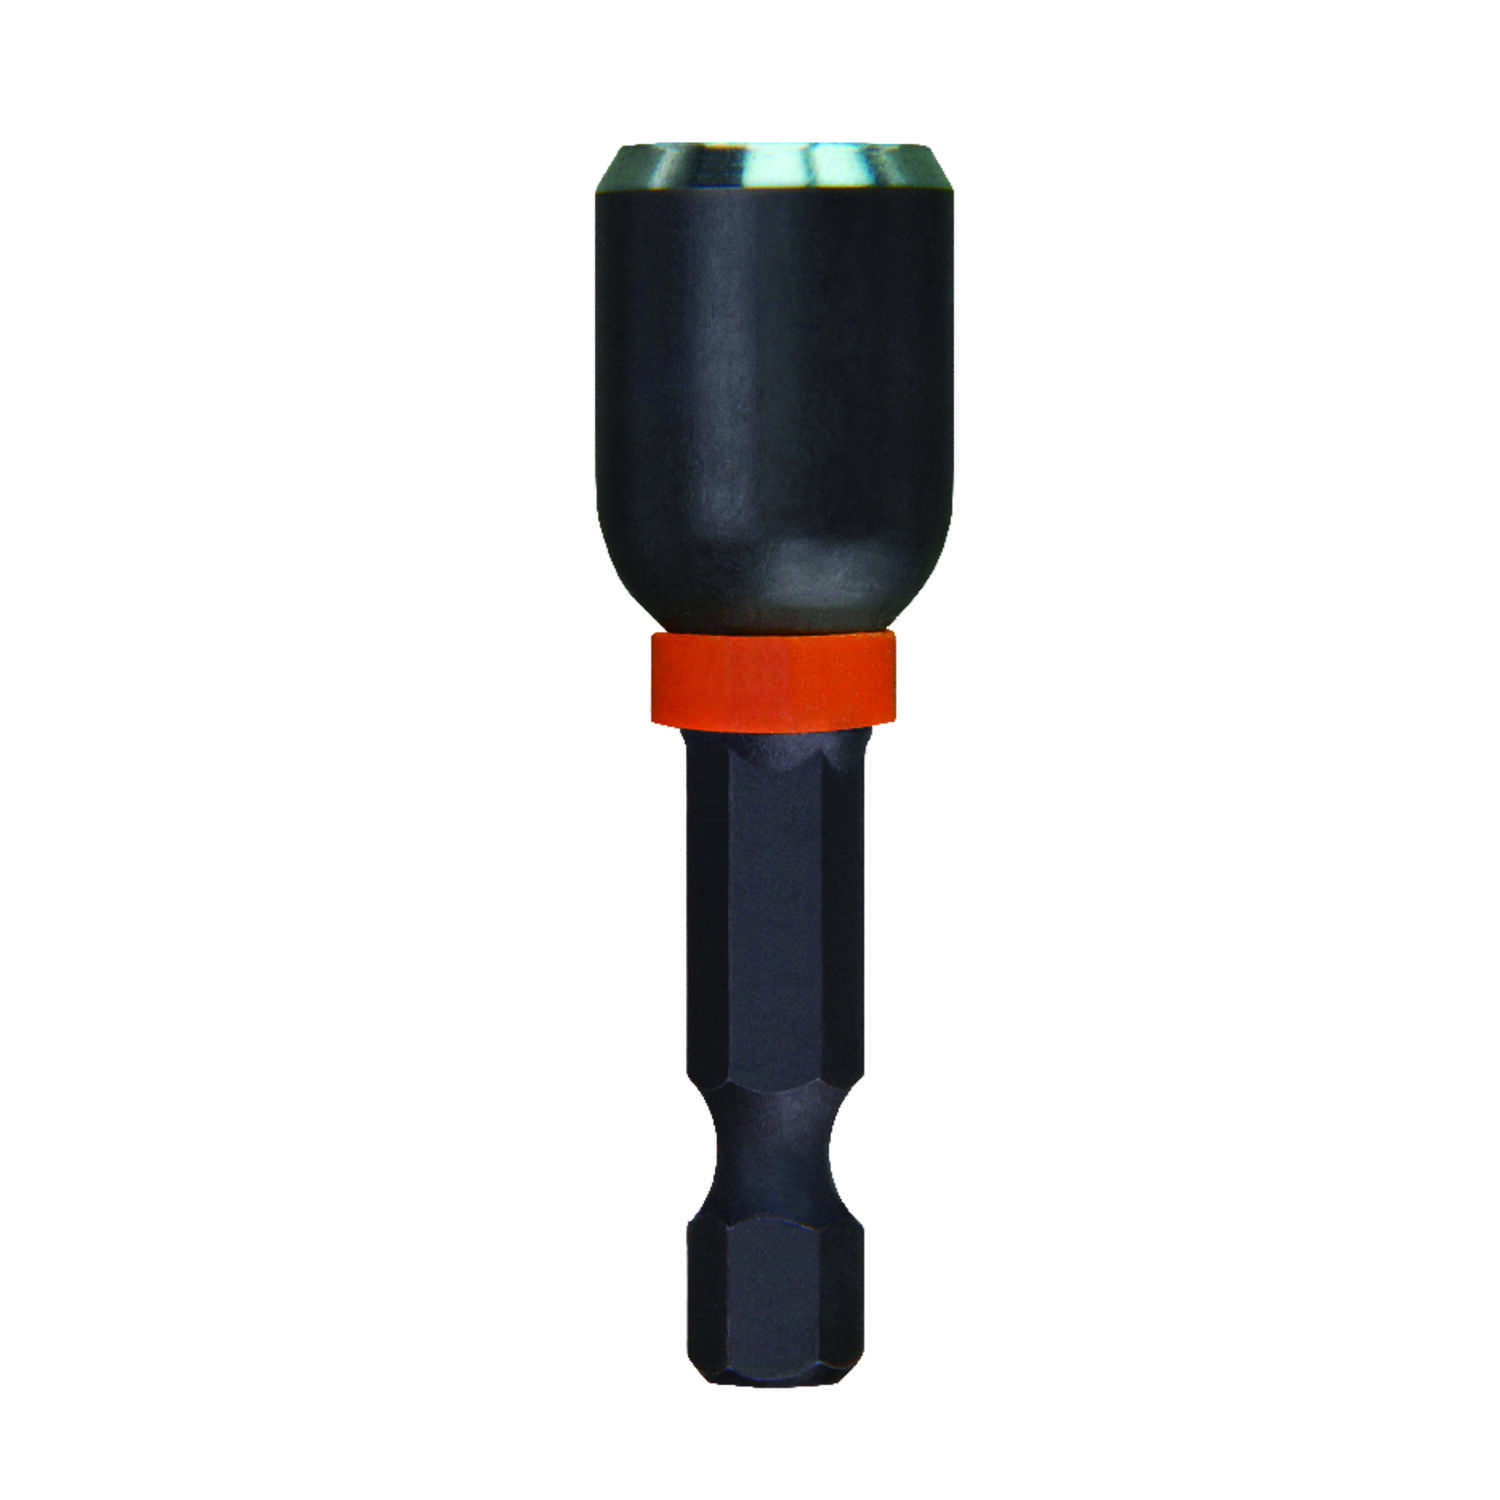 Milwaukee  SHOCKWAVE IMPACT DUTY  7/16 inch drive in.  x 2.5625 in. L Heat-Treated Steel  Nut Driver